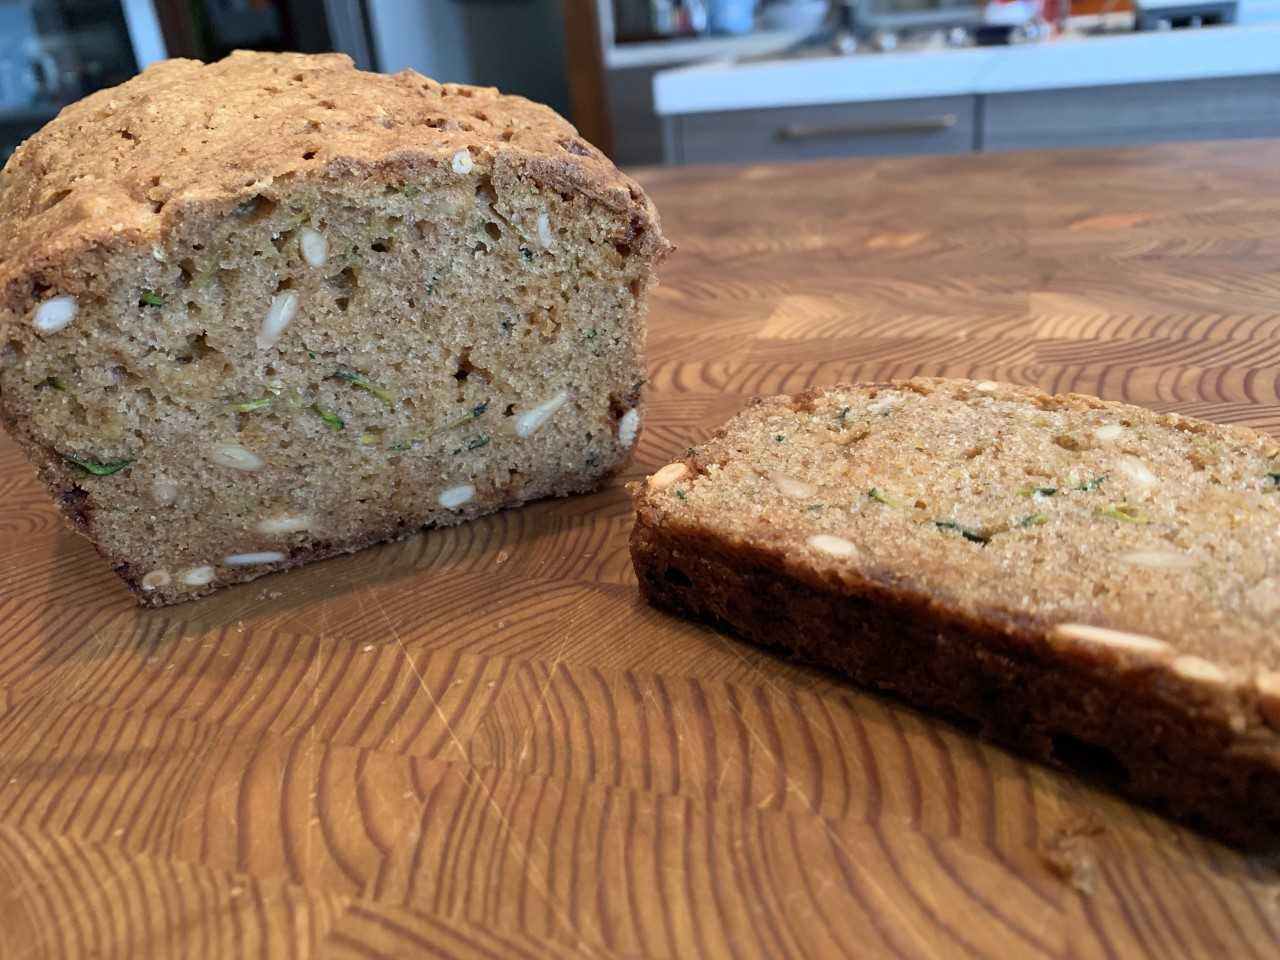 Zucchini Bread With Pine Nuts and White Chocolate Chips